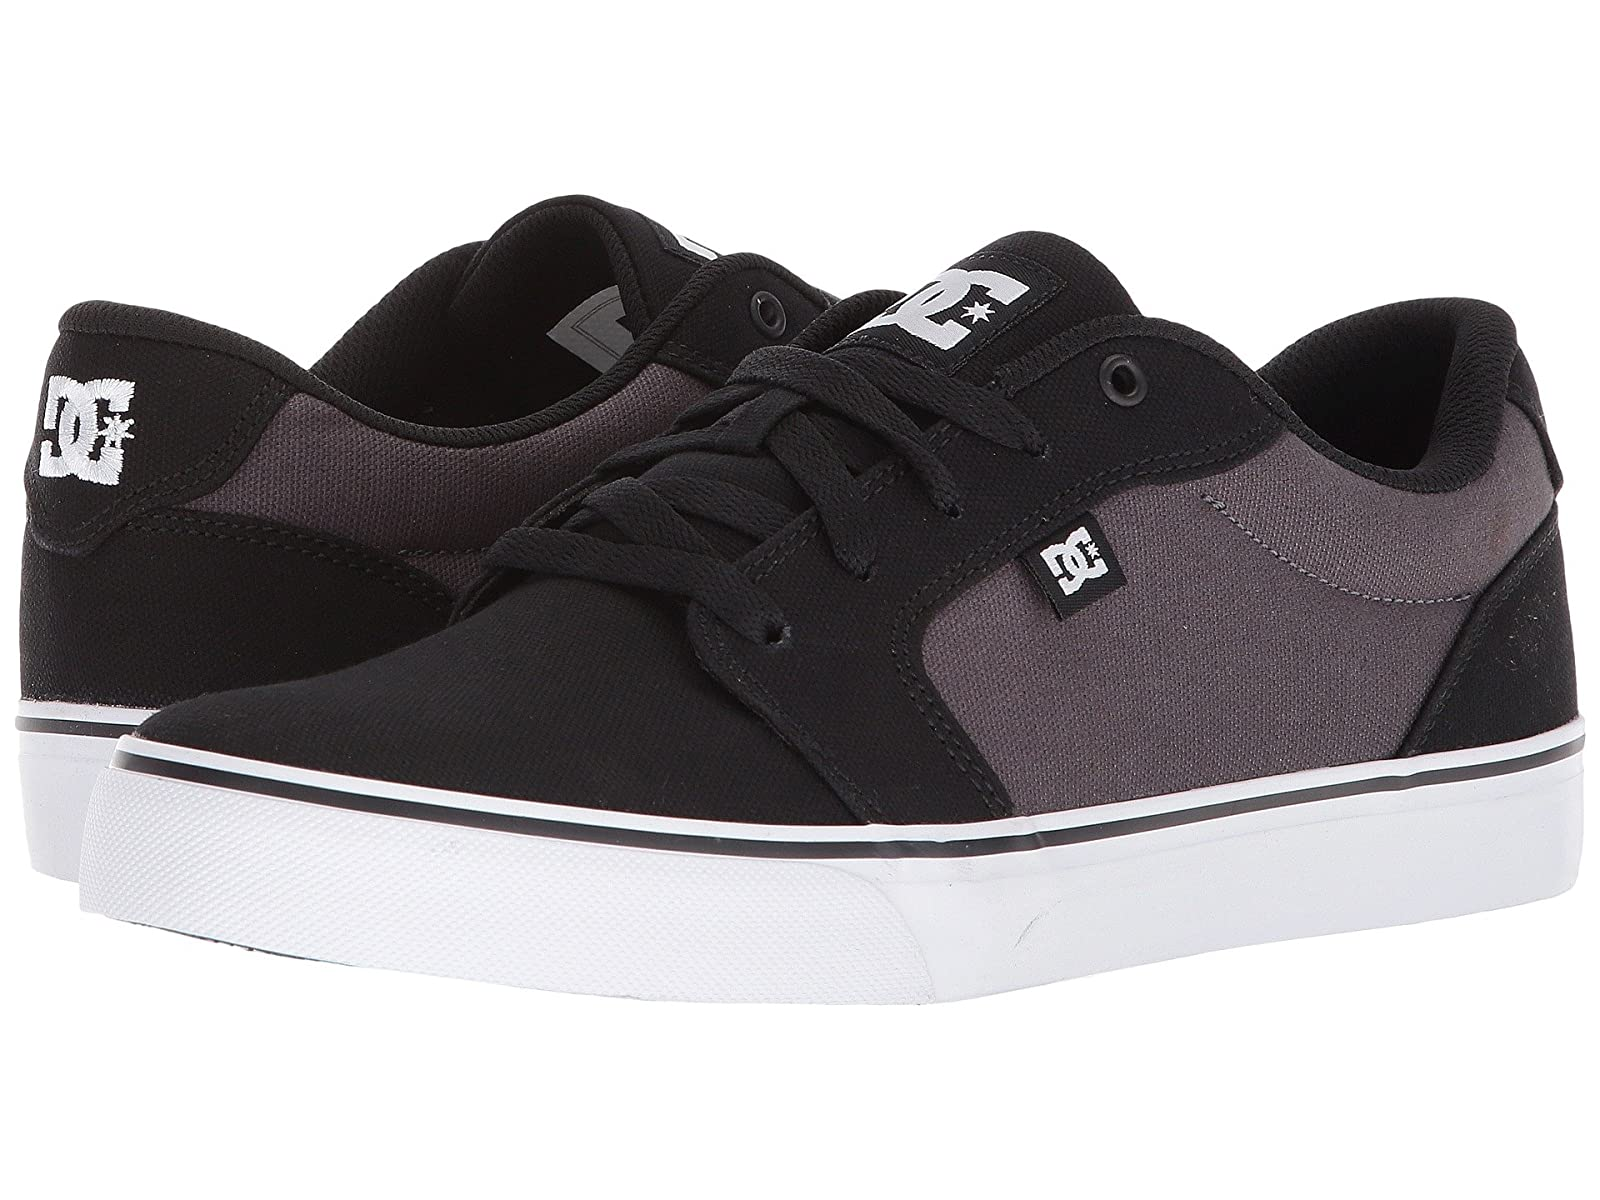 DC Anvil TXAtmospheric grades have affordable shoes